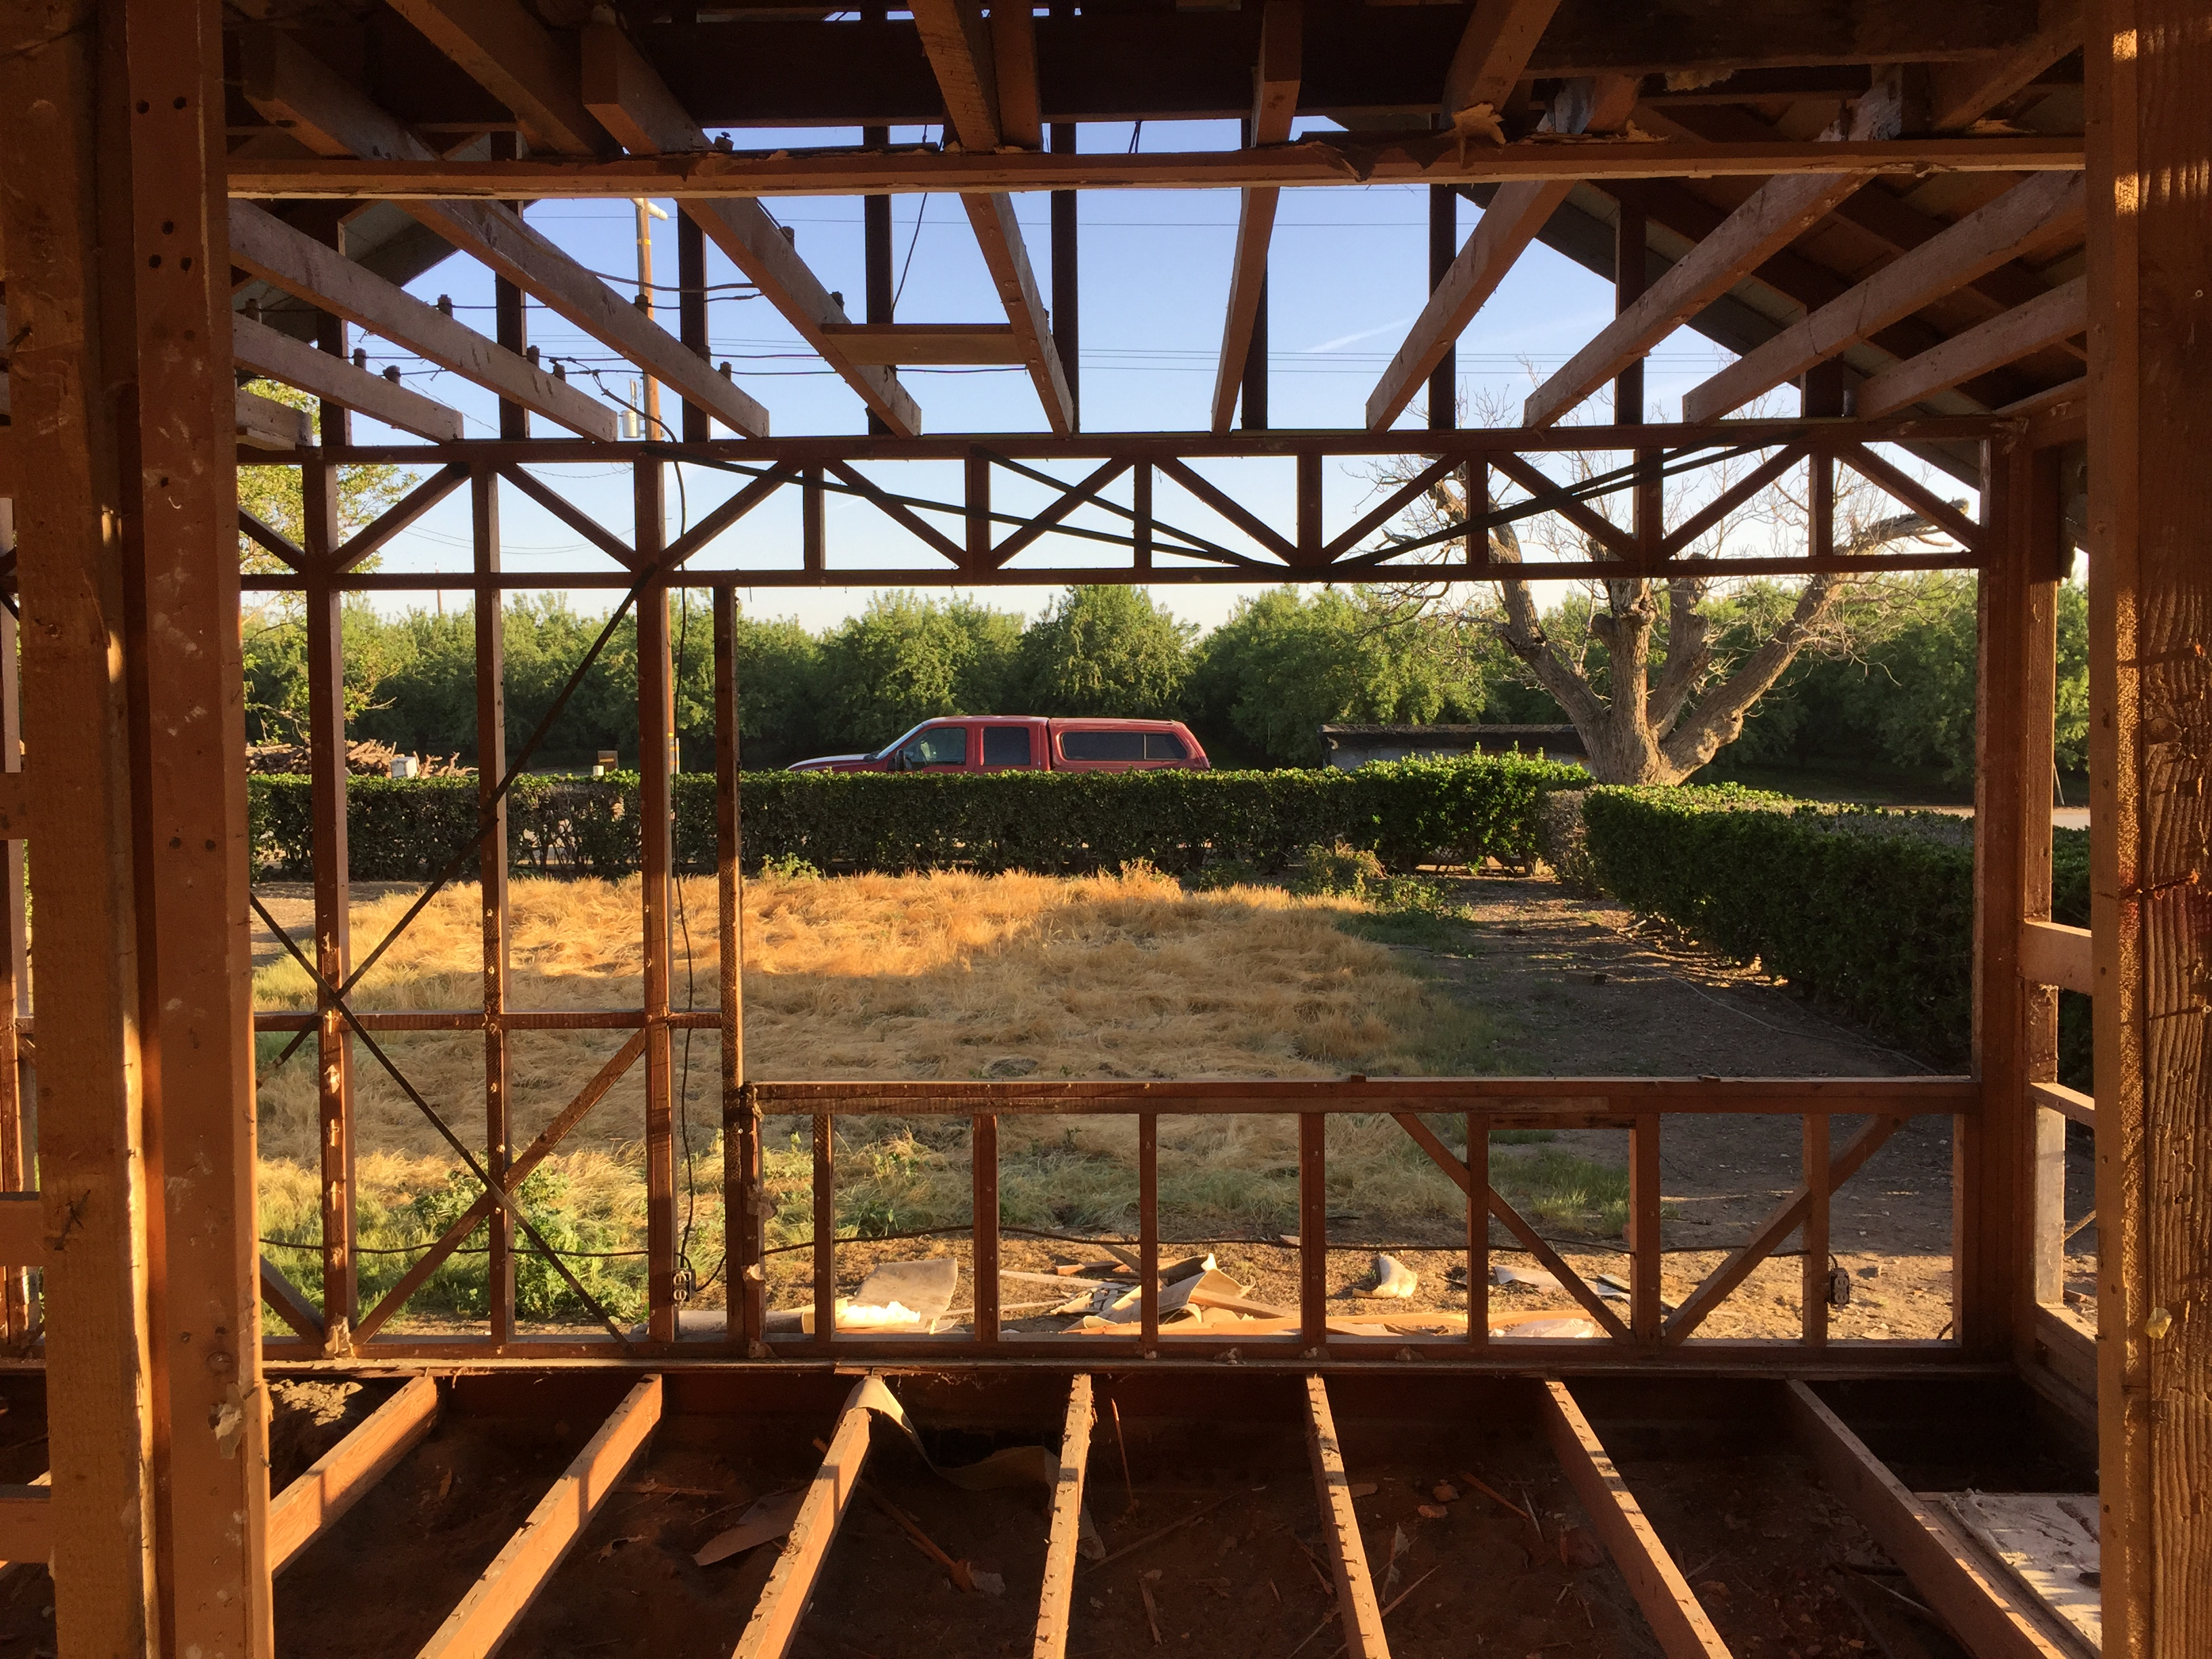 Brightwood Construction In Bakersfield Ca 93312